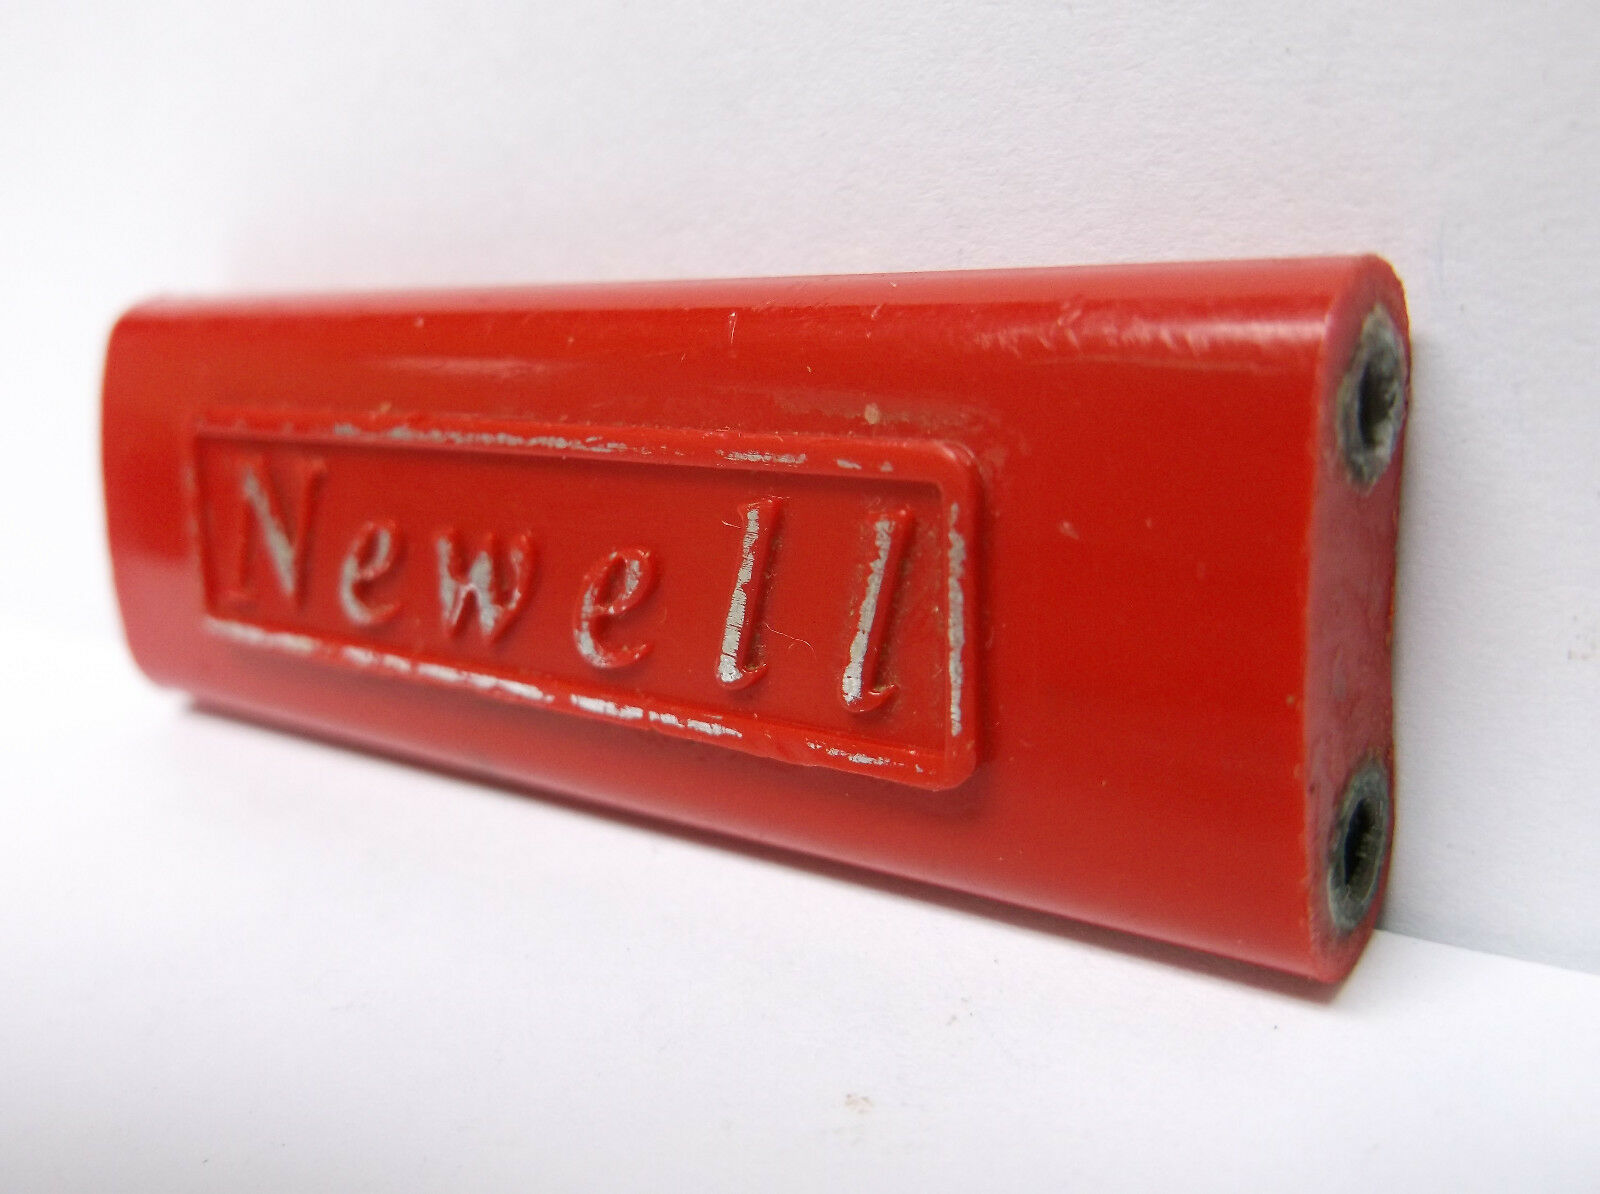 USED NEWELL CONVENTIONAL REEL PART - R 338 5 ROT - Spacer Bar Threaded  B